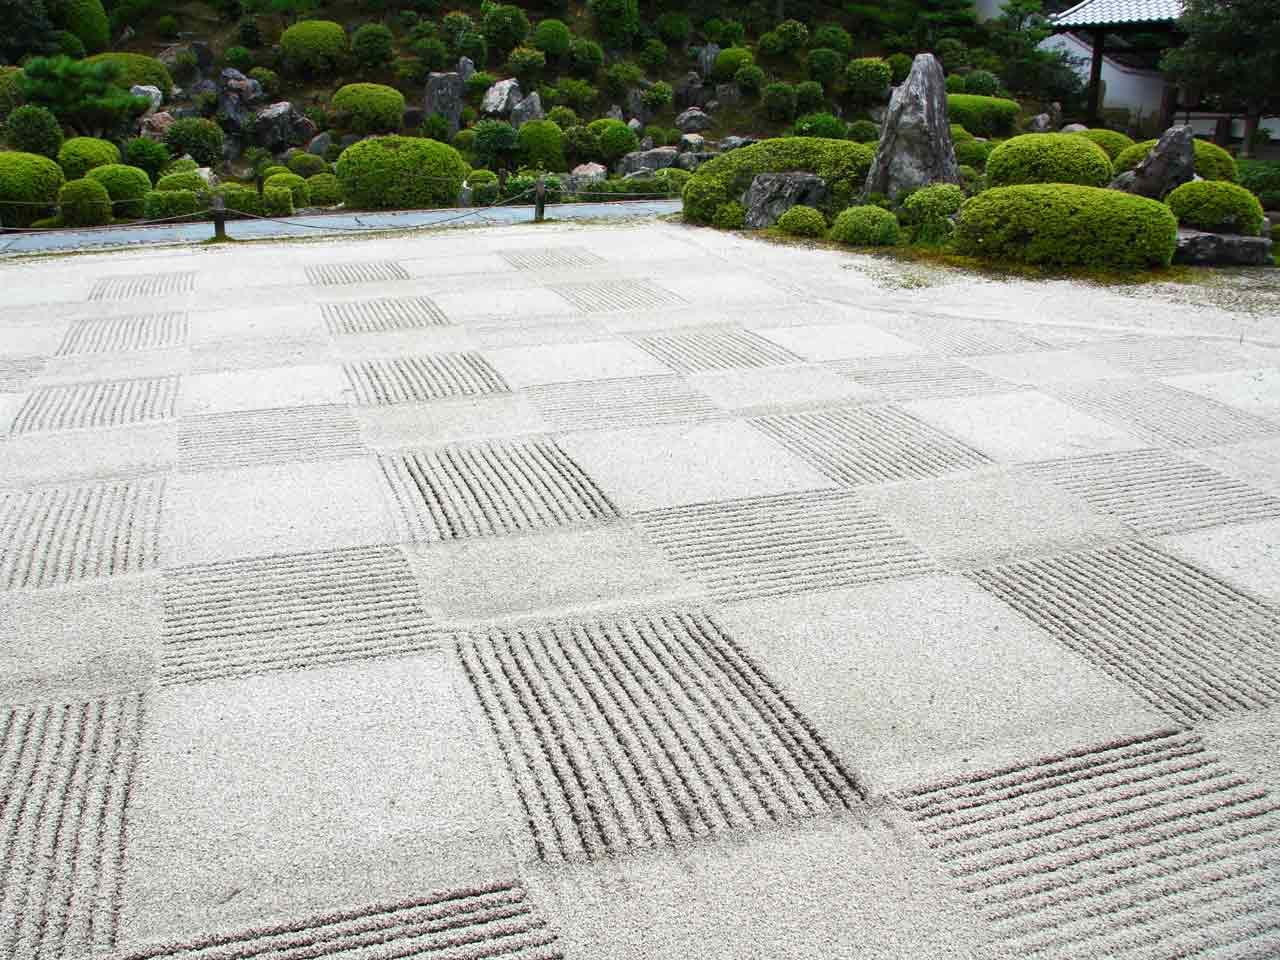 Zen Garden Ideas zen garden plans 634x503 15 inviting small japanese zen garden to motivate you Tofuku Ji Dry Rock Zen Garden